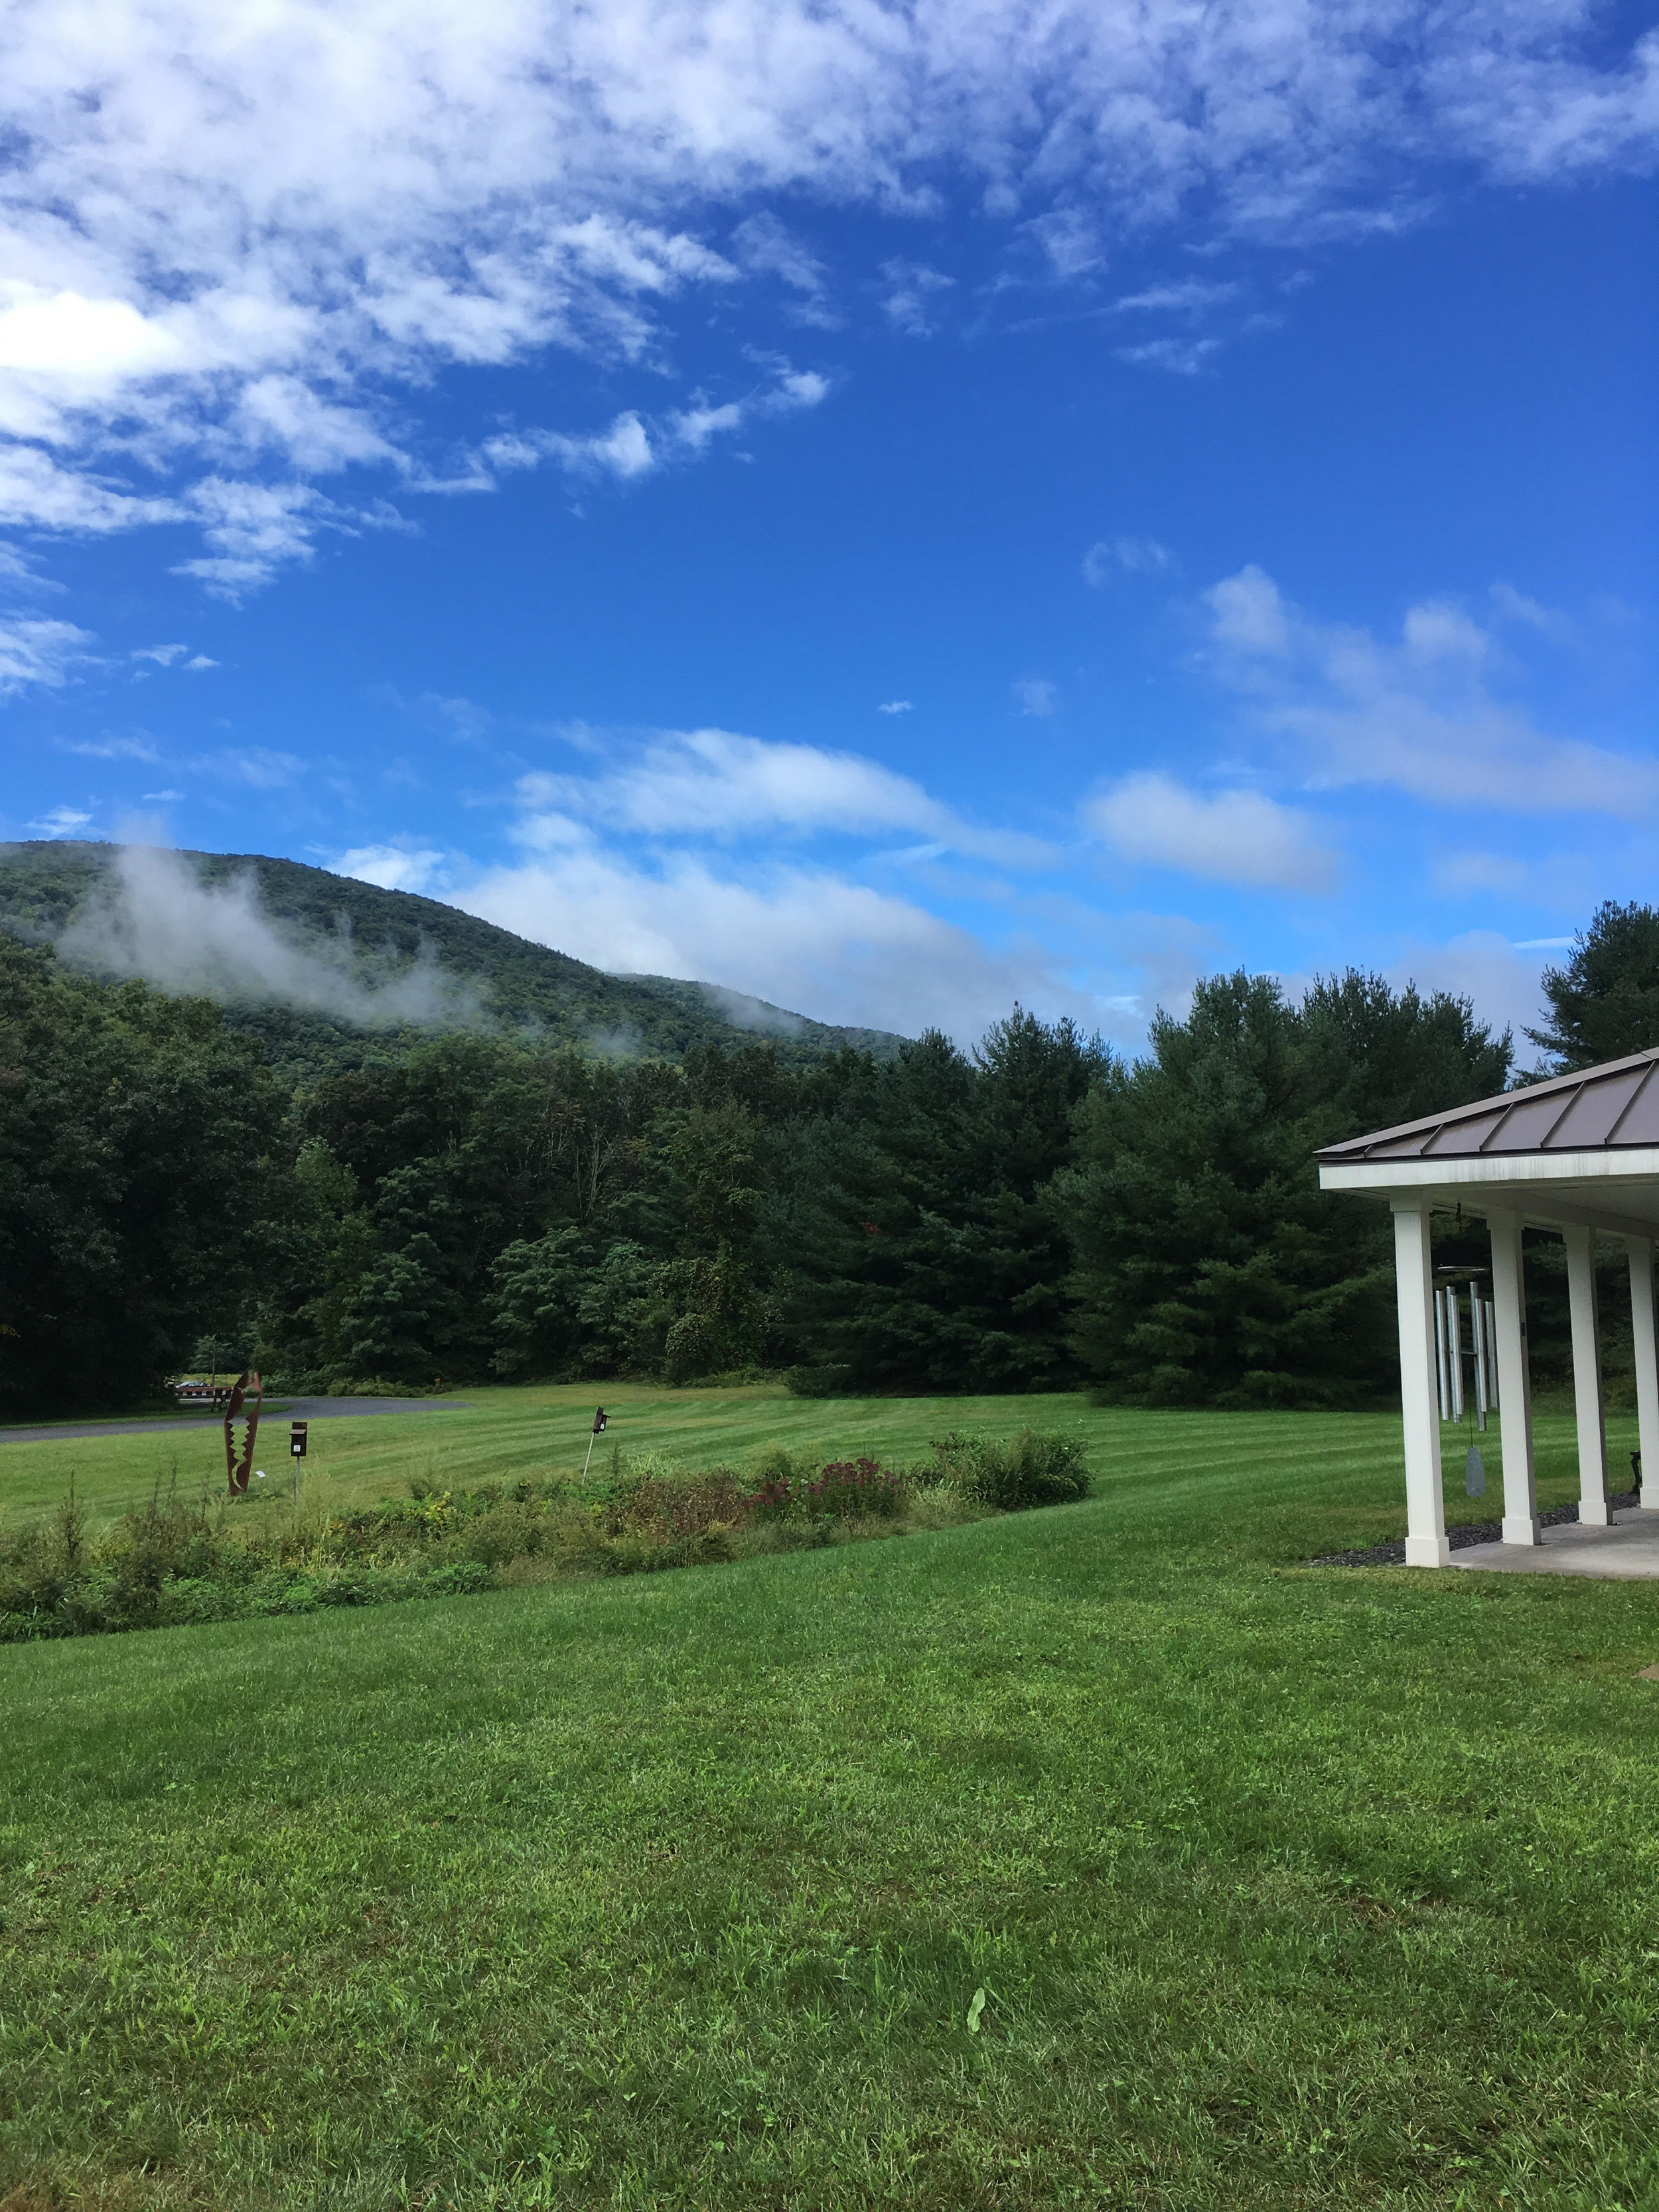 Saturday and Sunday should bring sunny skies back to the Catskills! Stop by the Catskill Interpretive Center on Route 28 in Mt. Tremper for trail maps and information.